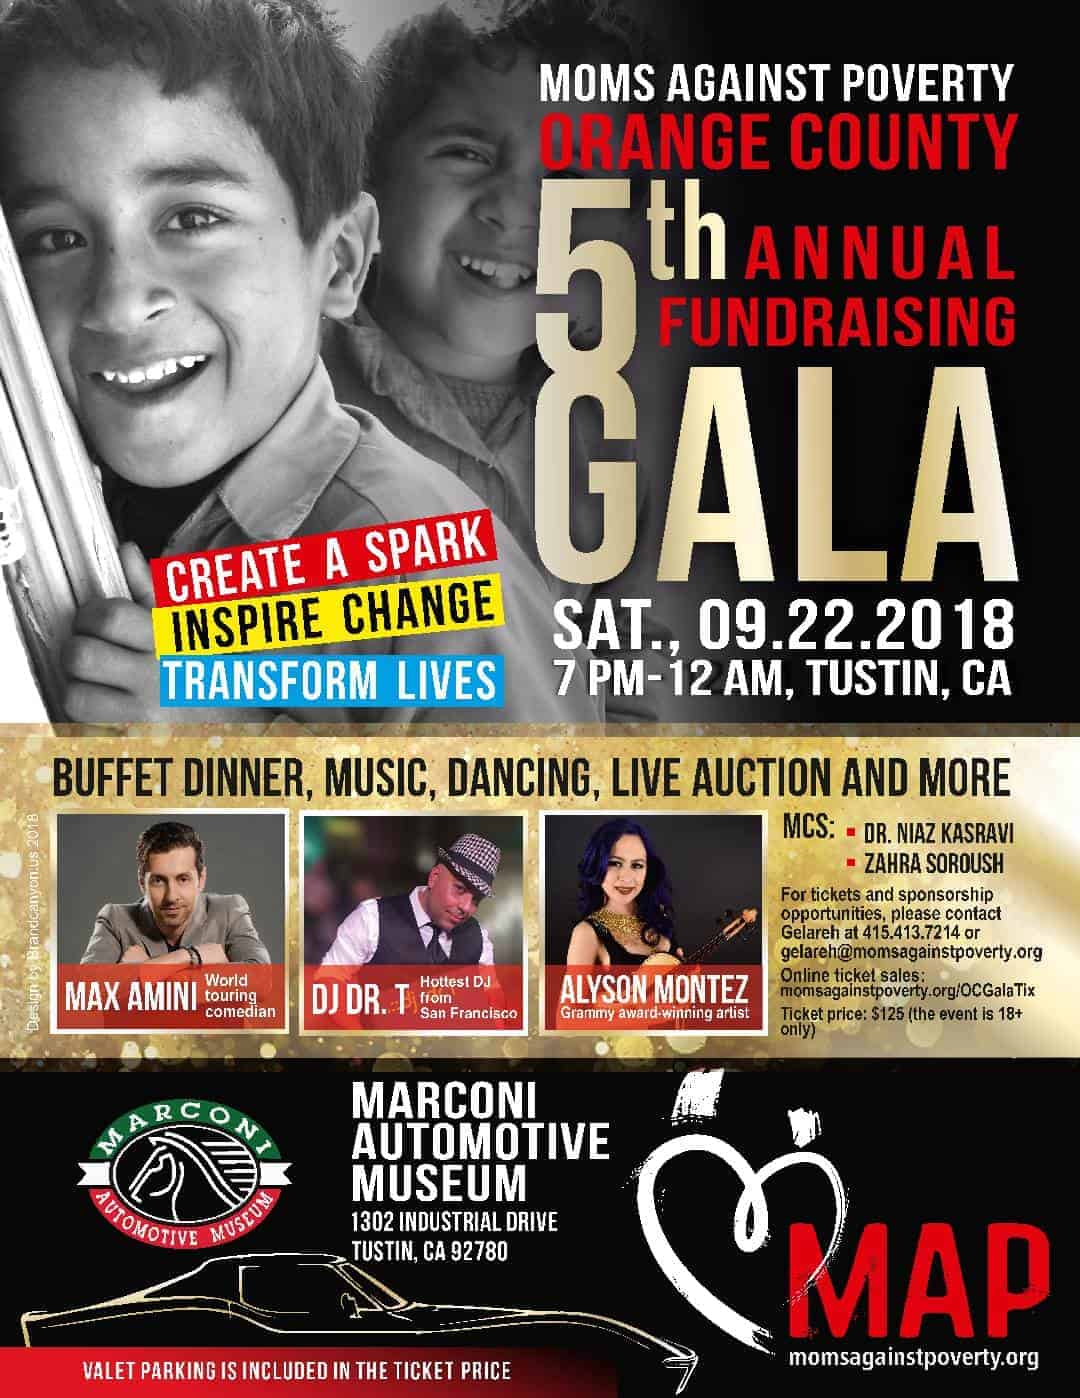 5th Annual Fundraising Gala – SEP 22, 2018 – OC